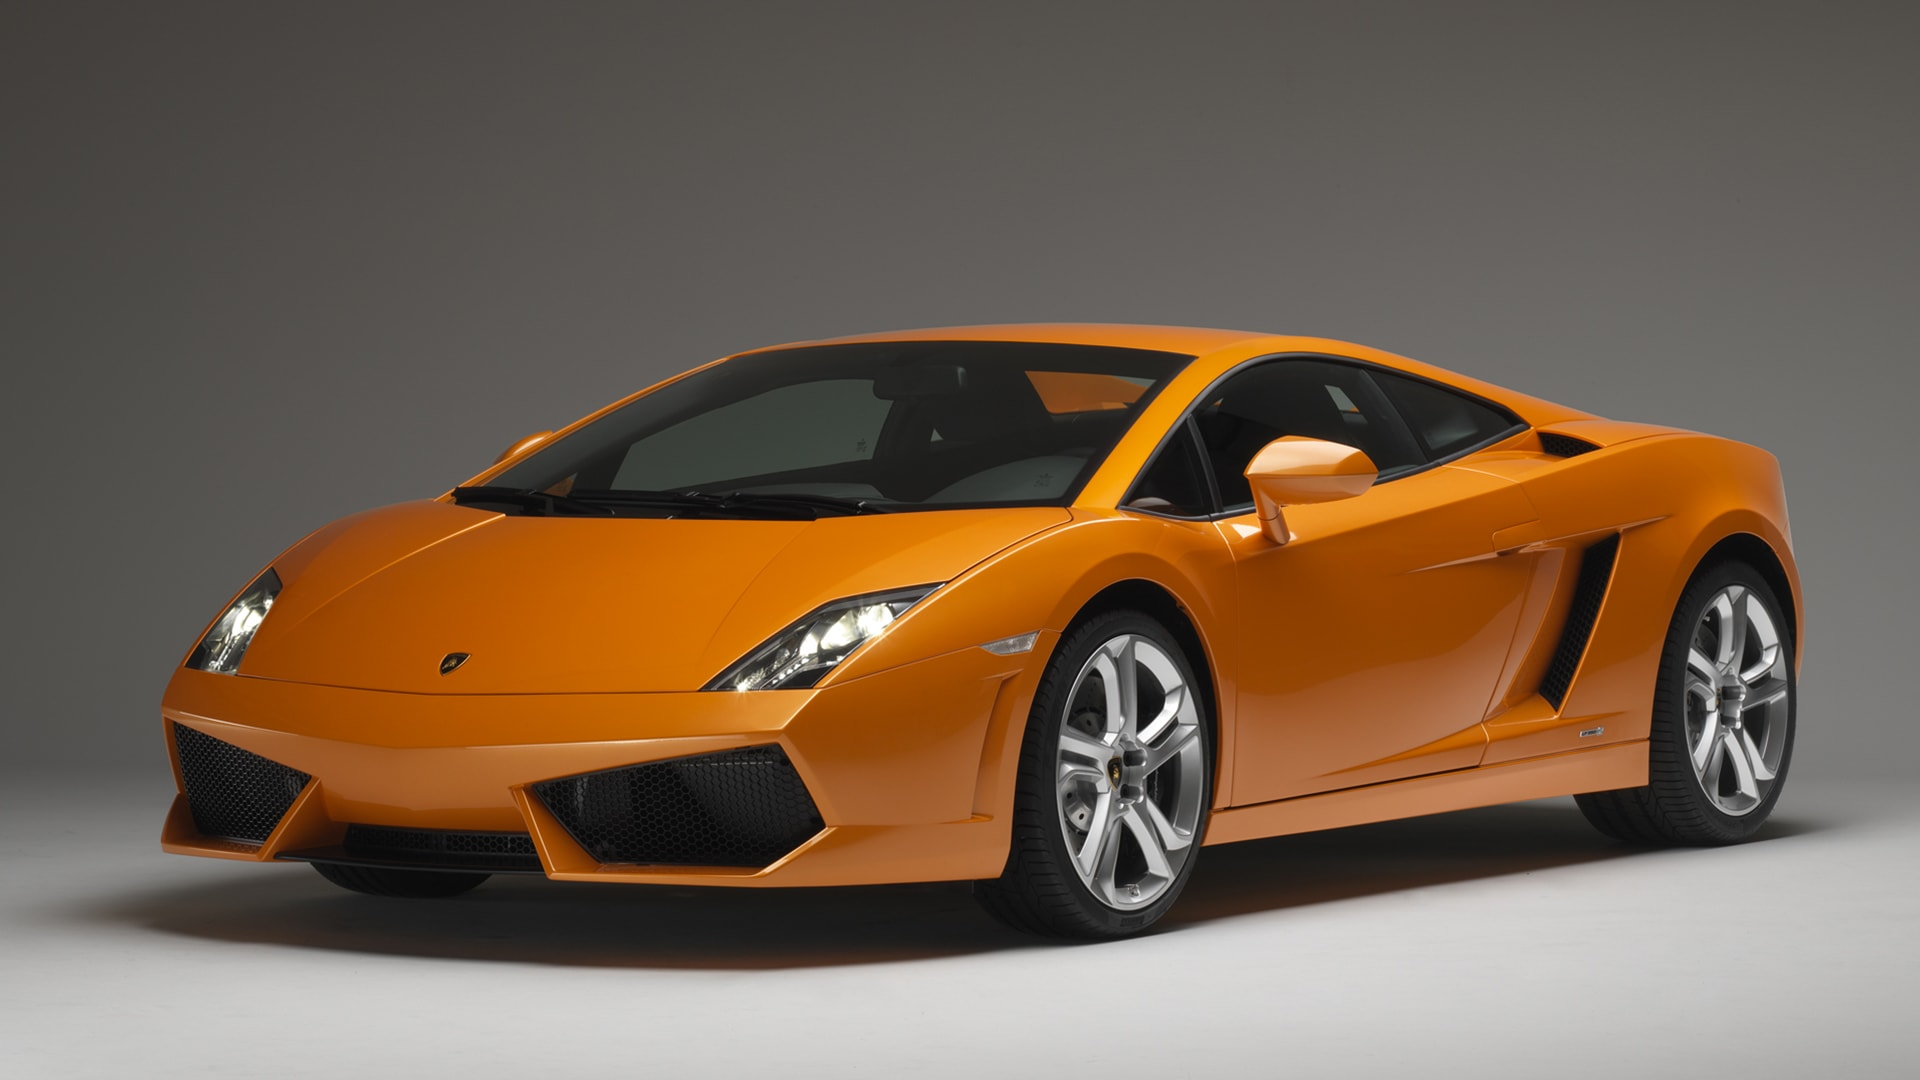 gallardo-lp-550-2-coupe-header.jpg